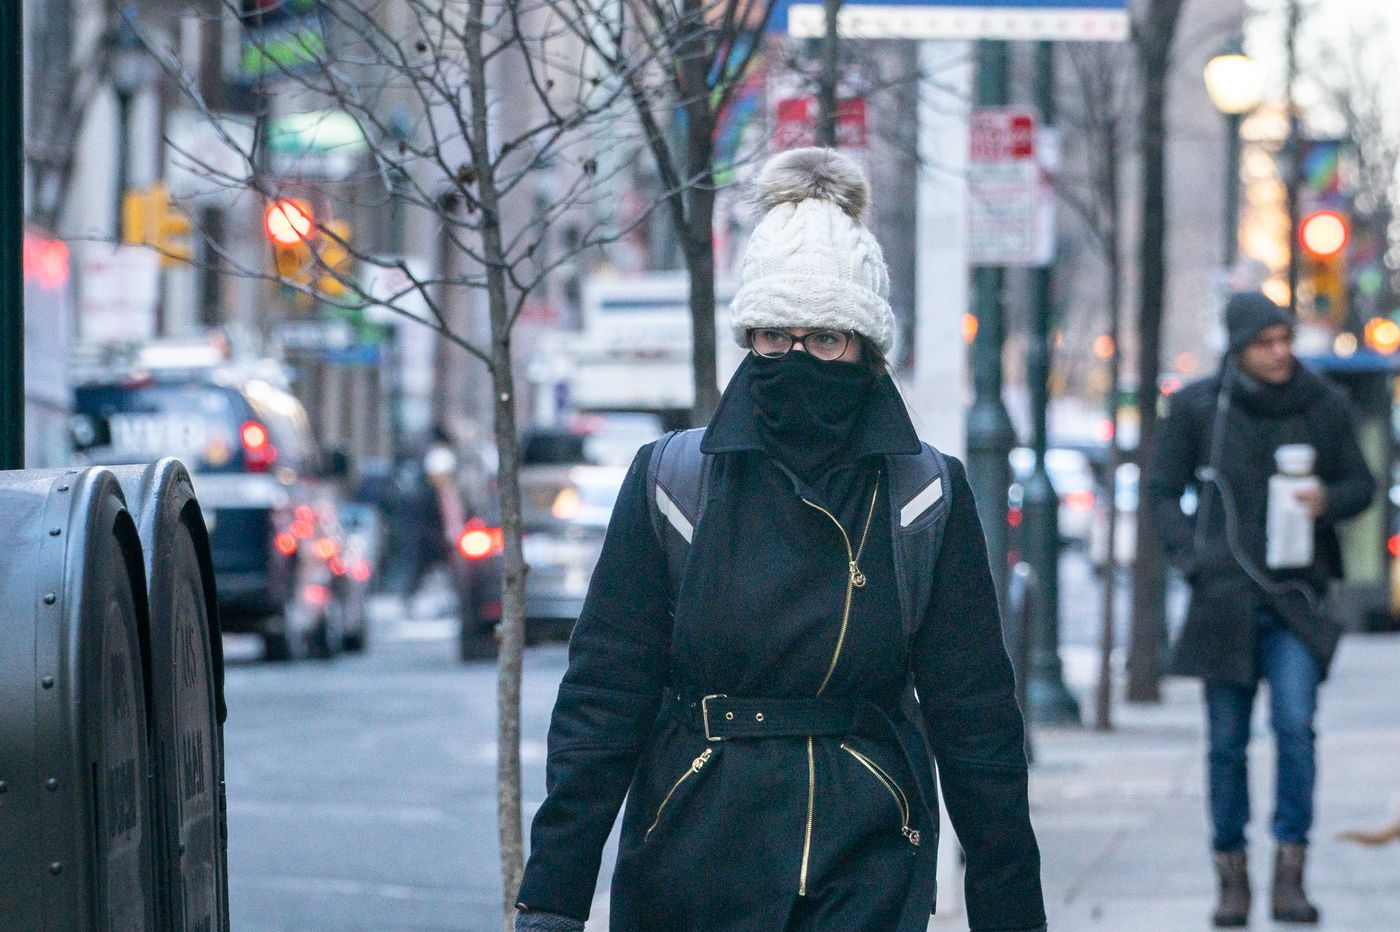 How to feel warmer even on cold days